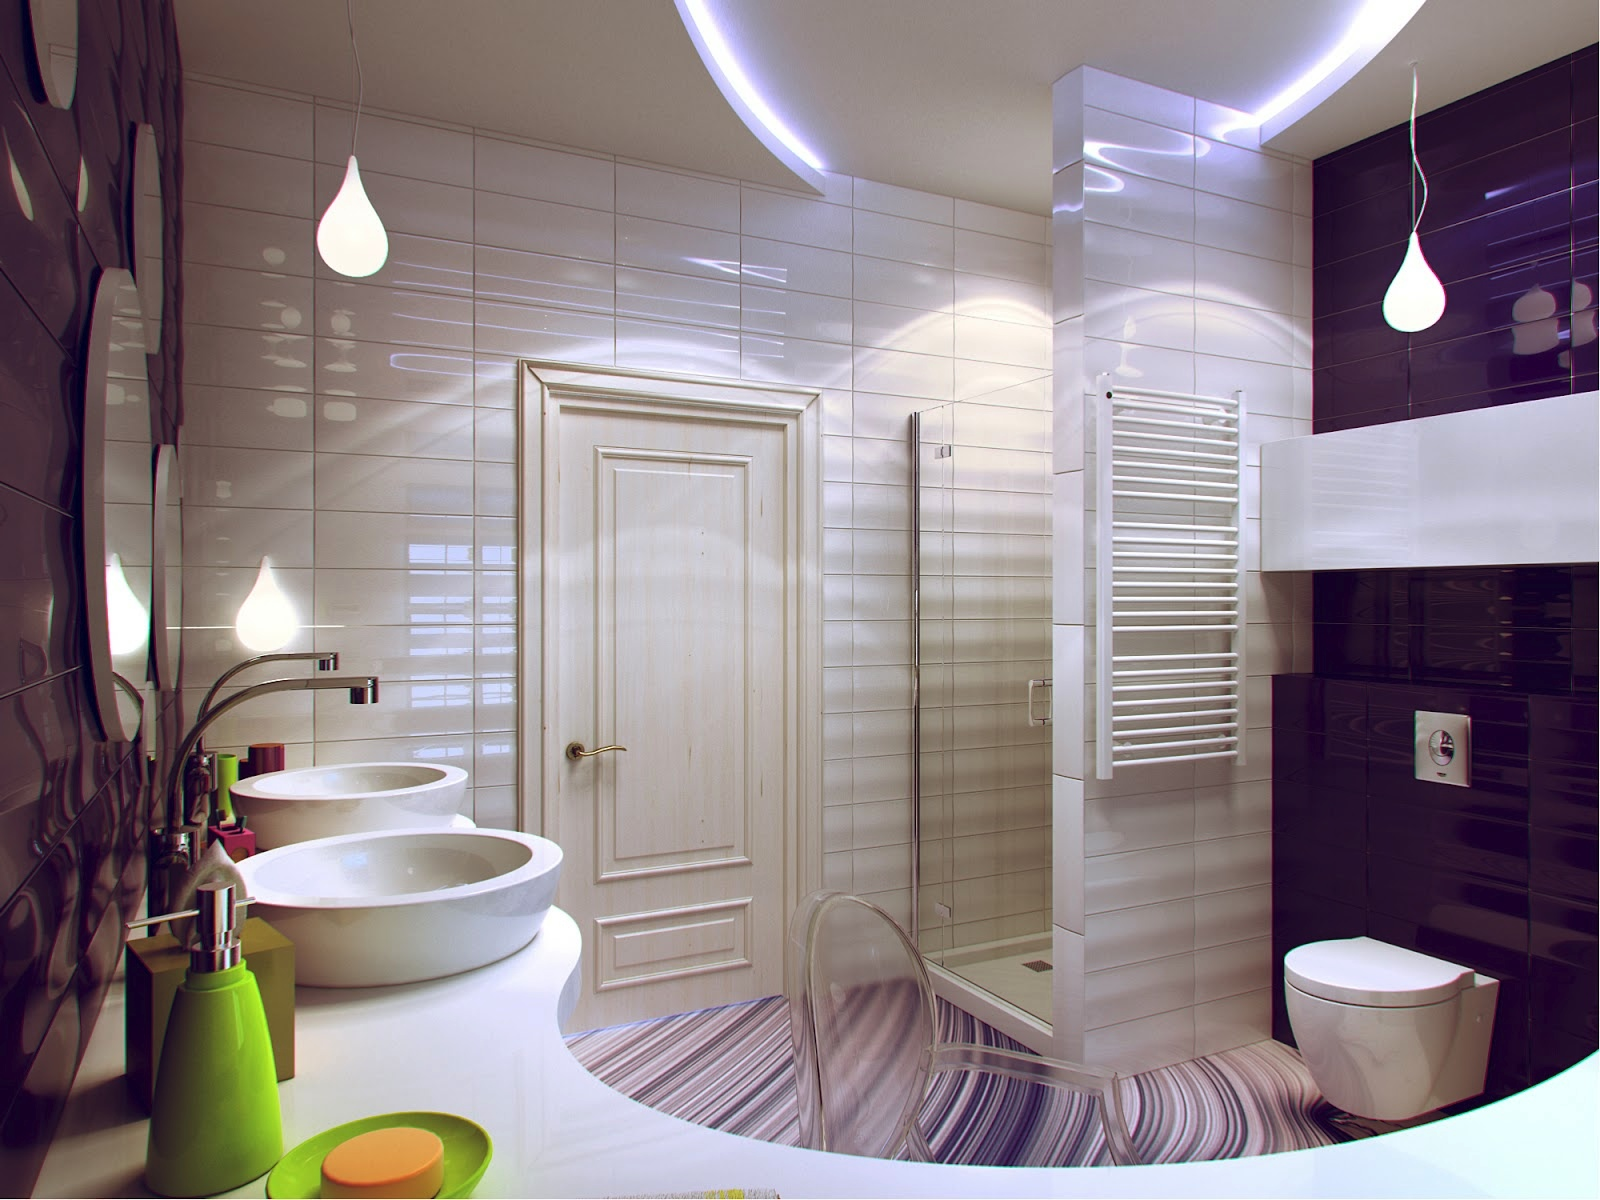 Bathroom Decorating Ideas 2012 - 25 cool bathrooms ideas